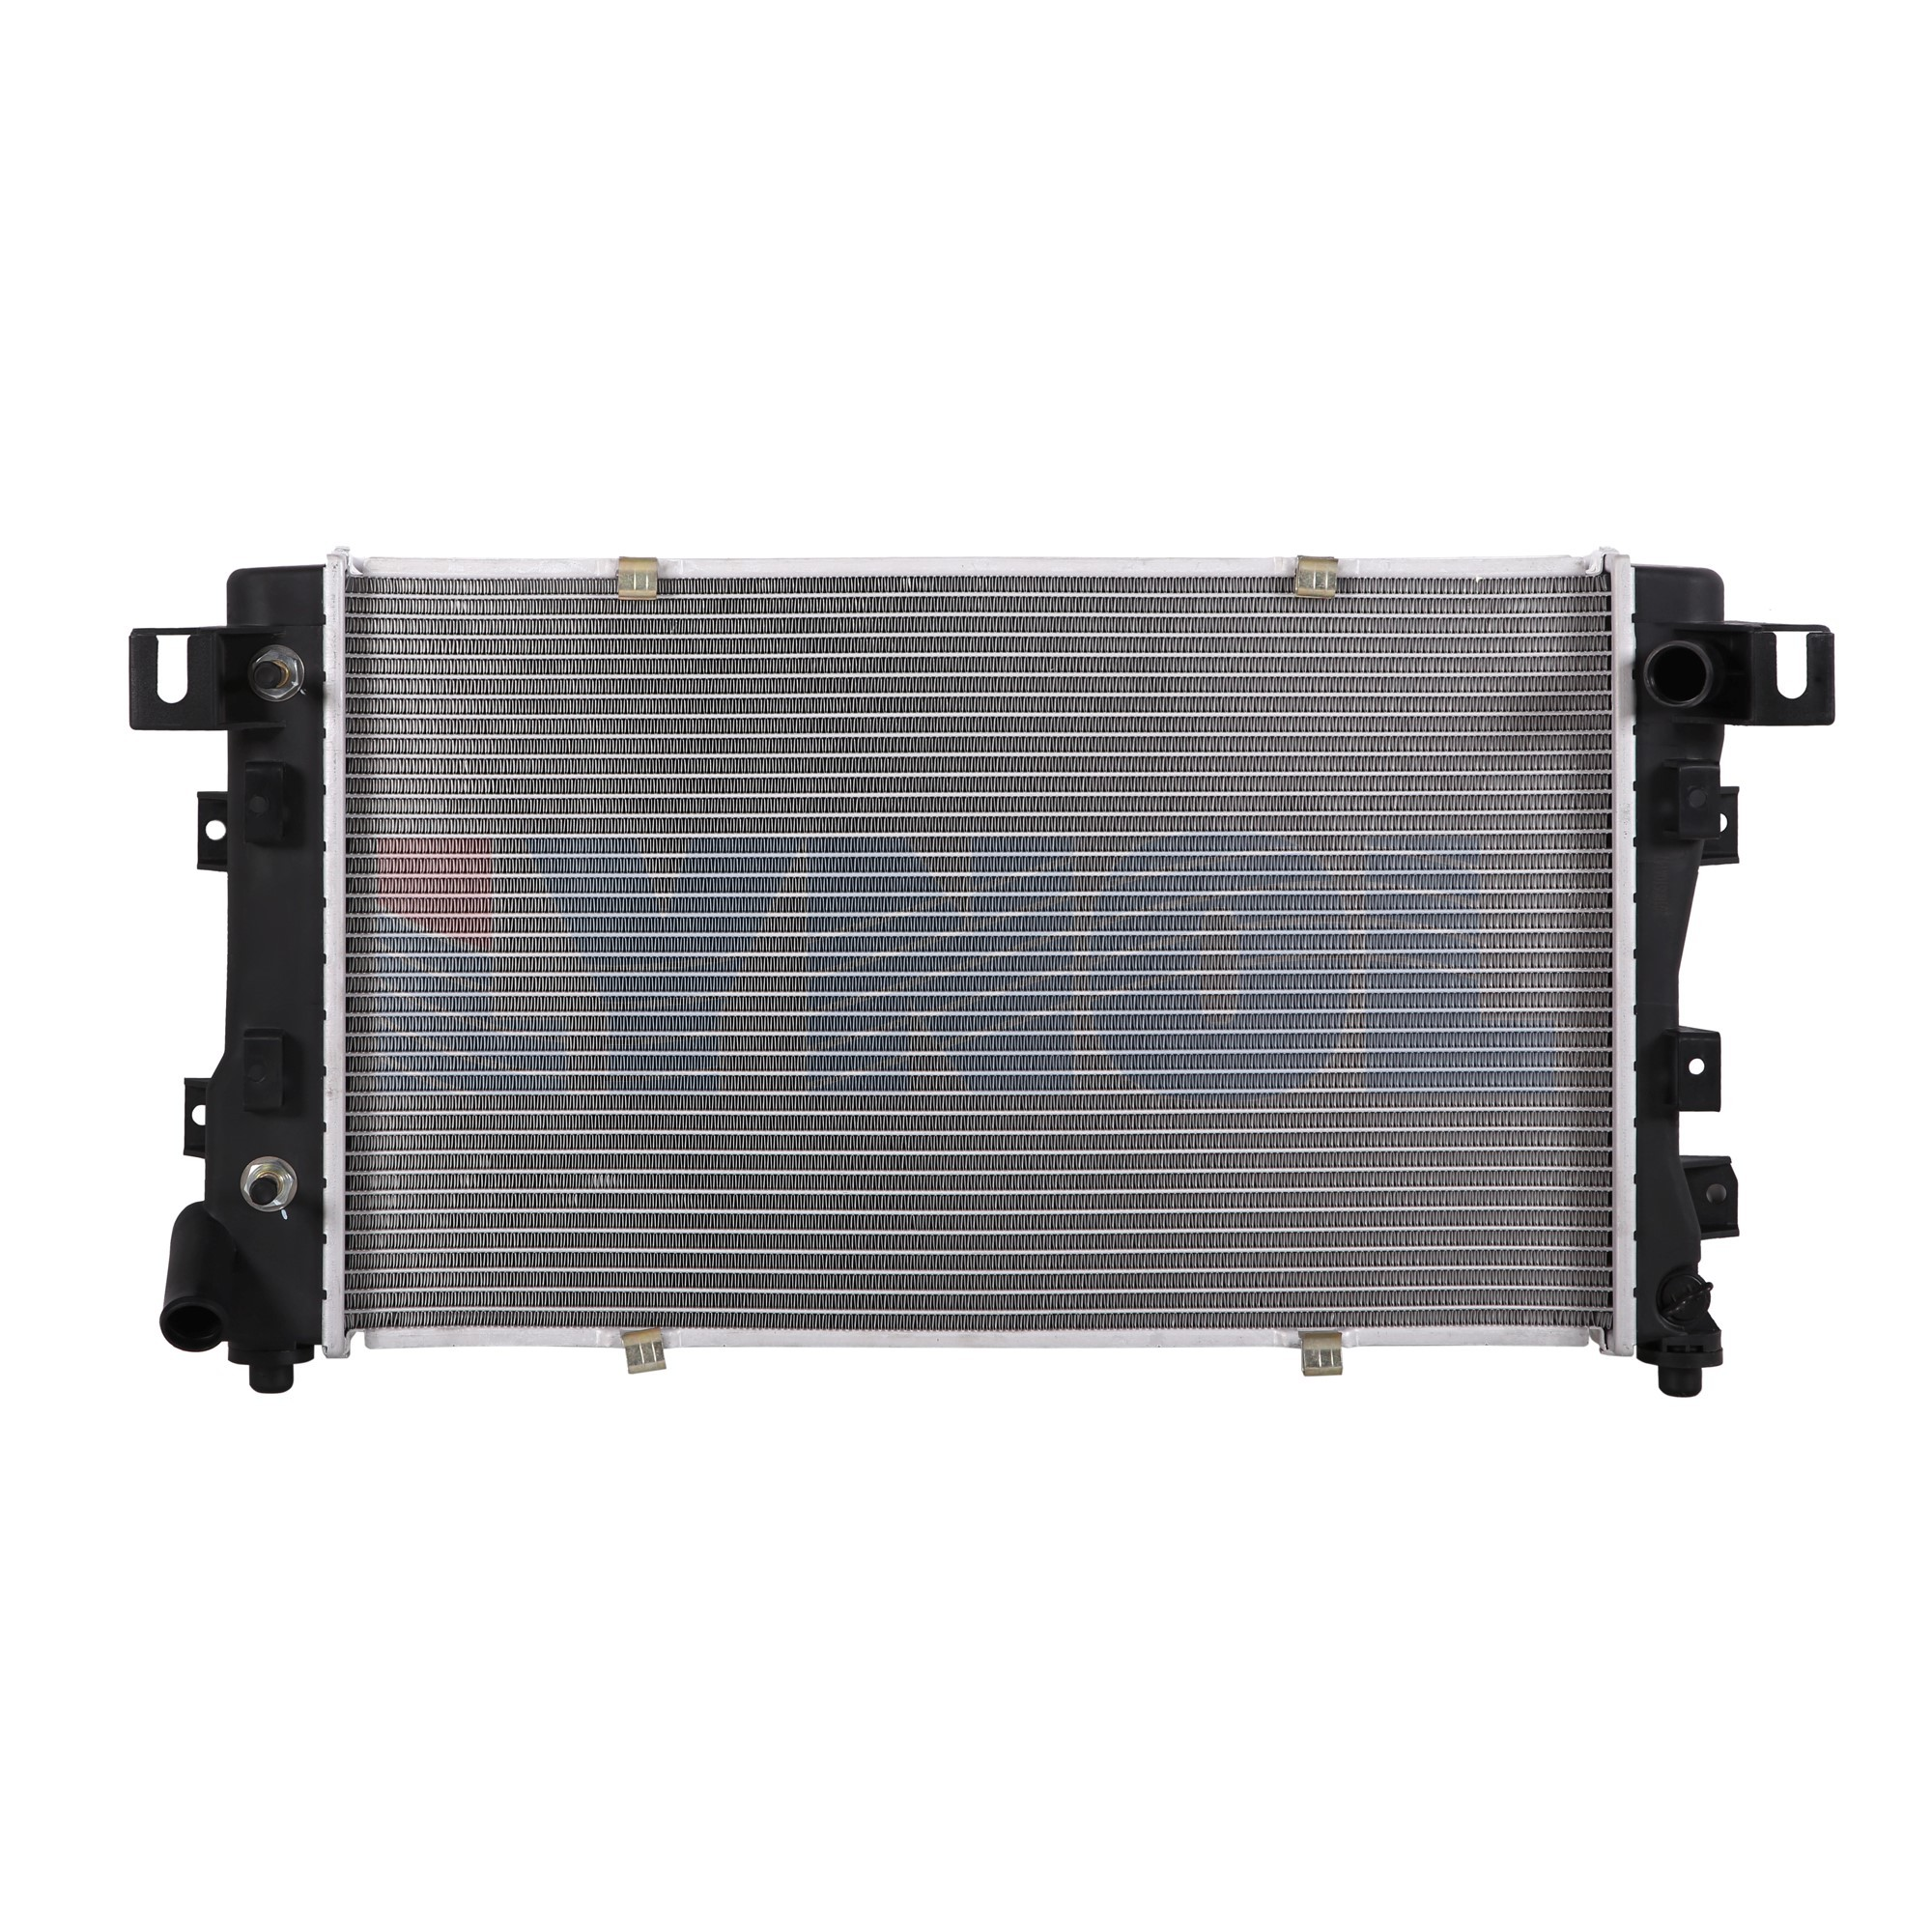 LR1390 - RADIATOR  - 93-97 Chrysler Concorde / Intrepid / LHS / New Yorker, Dodge Intrepid, Eagle Vision